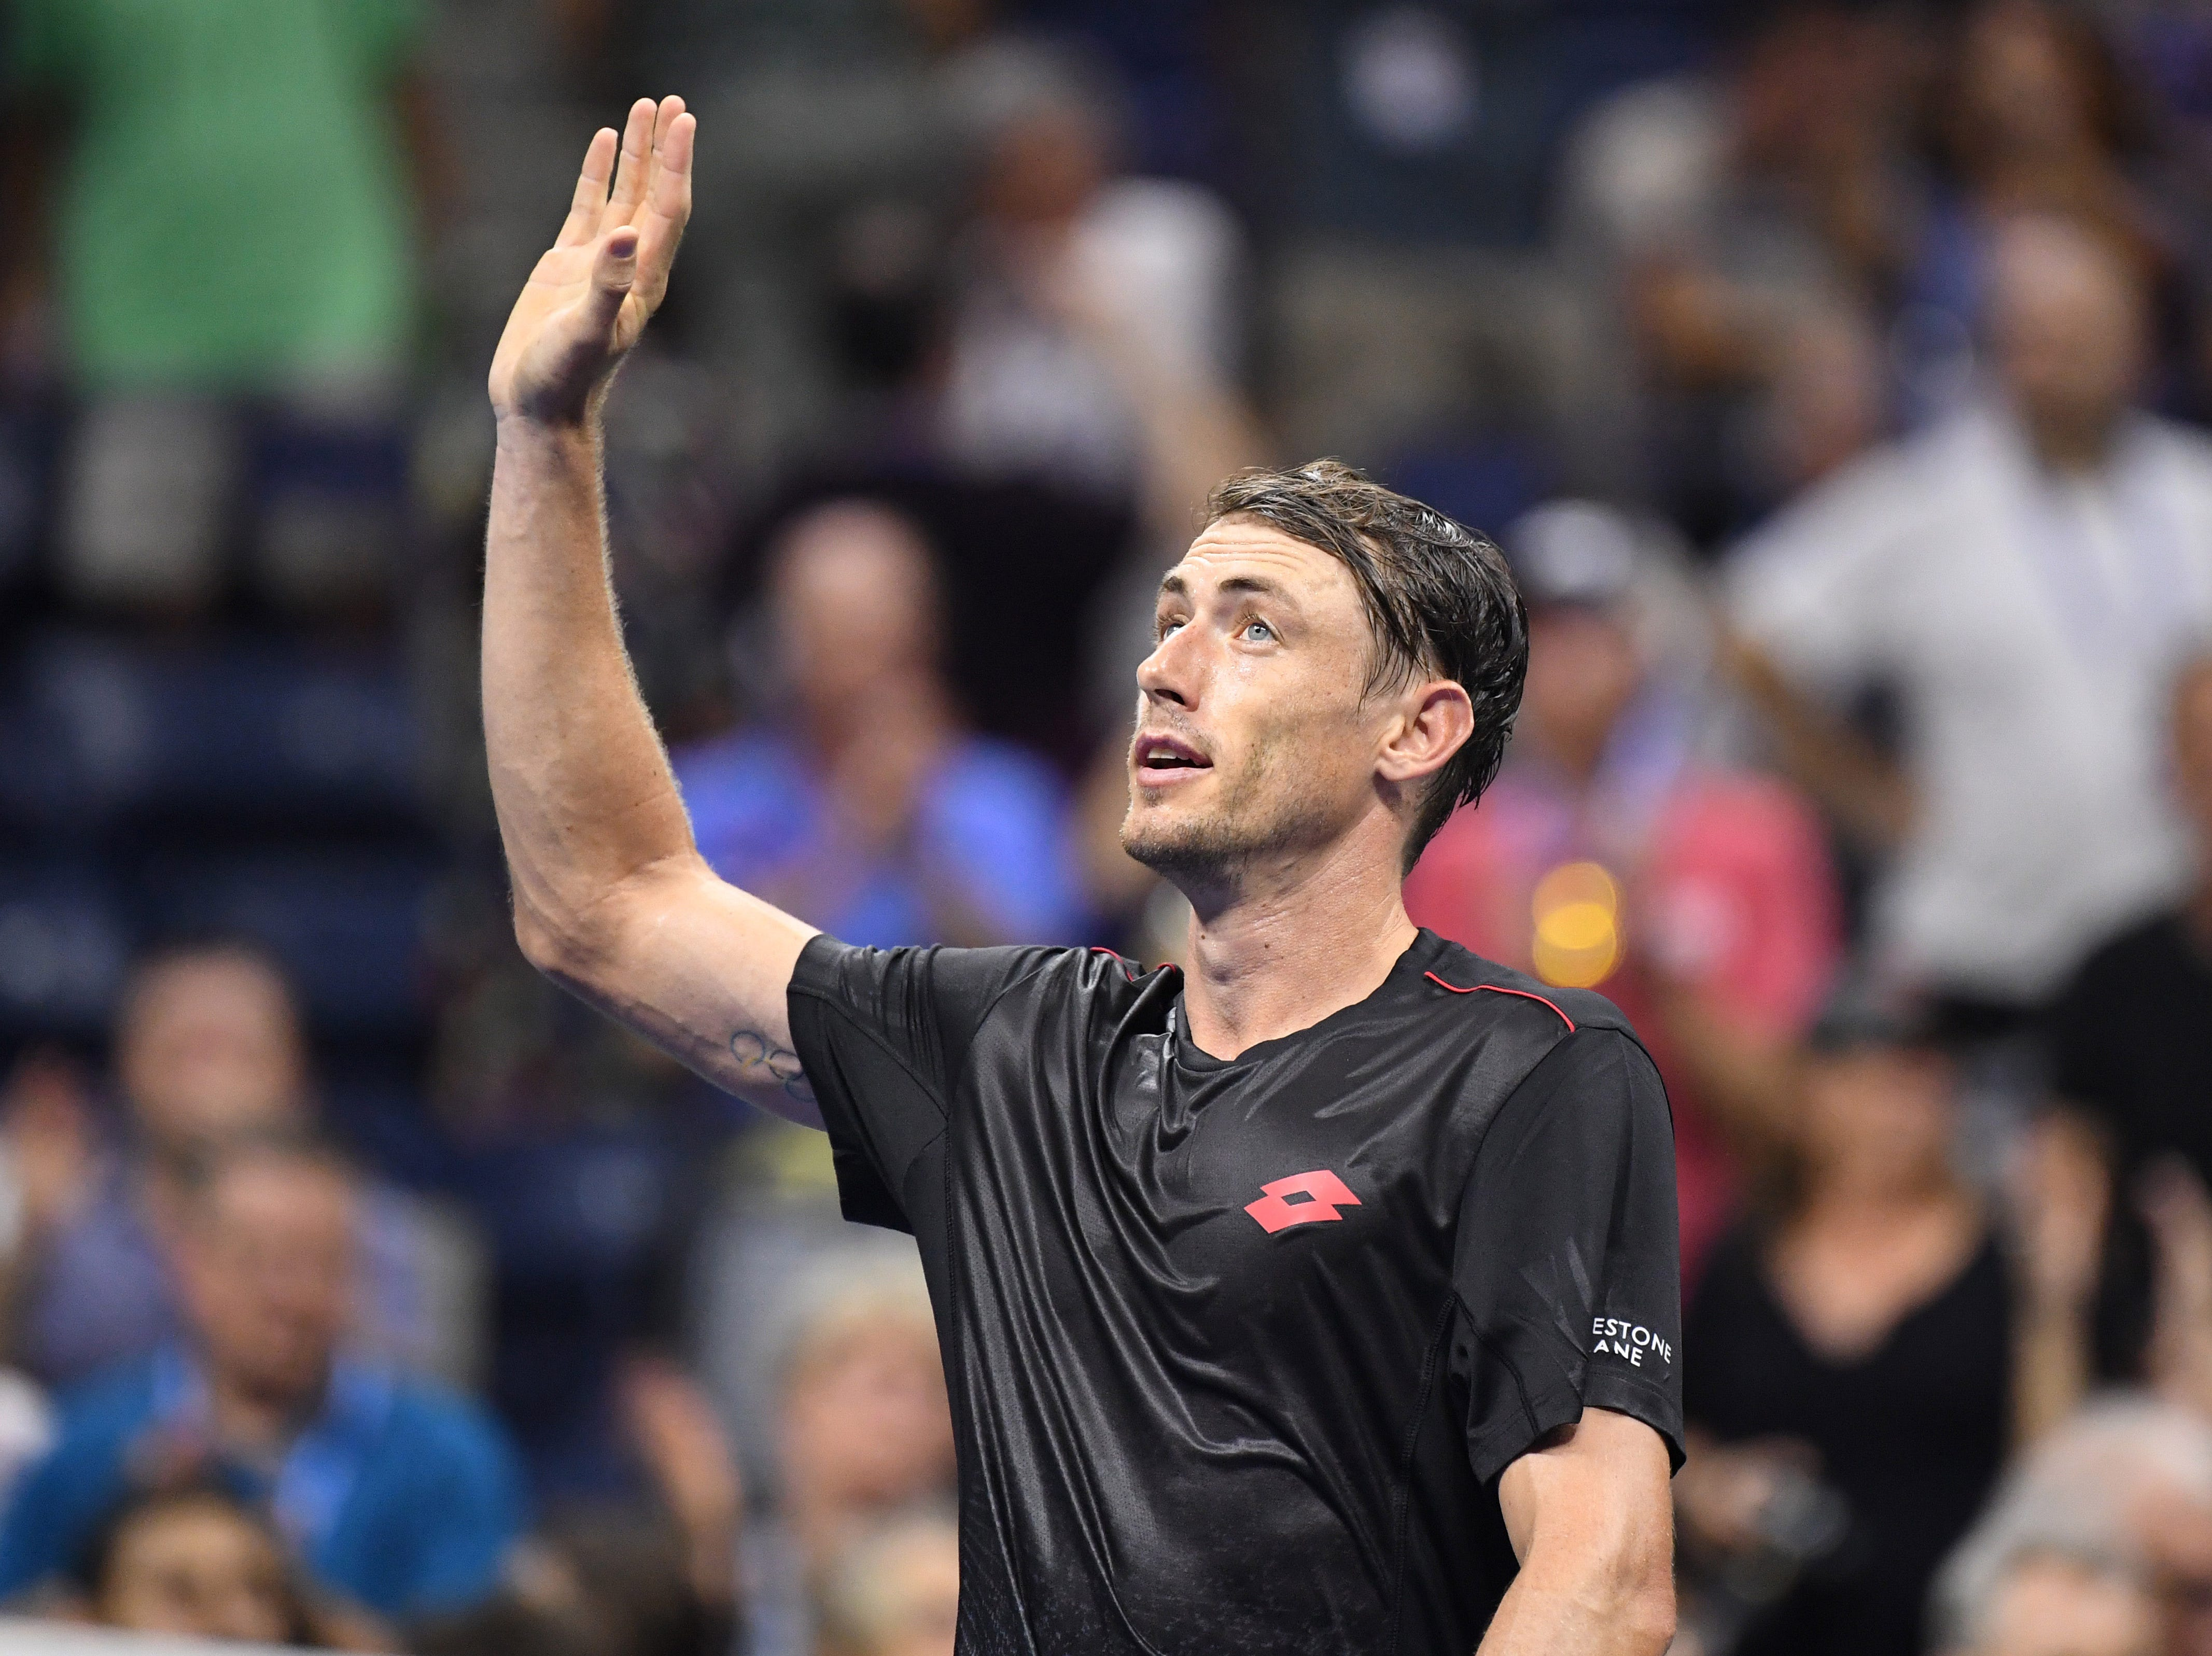 John Millman celebrates after defeating Roger Federer in the fourth round.